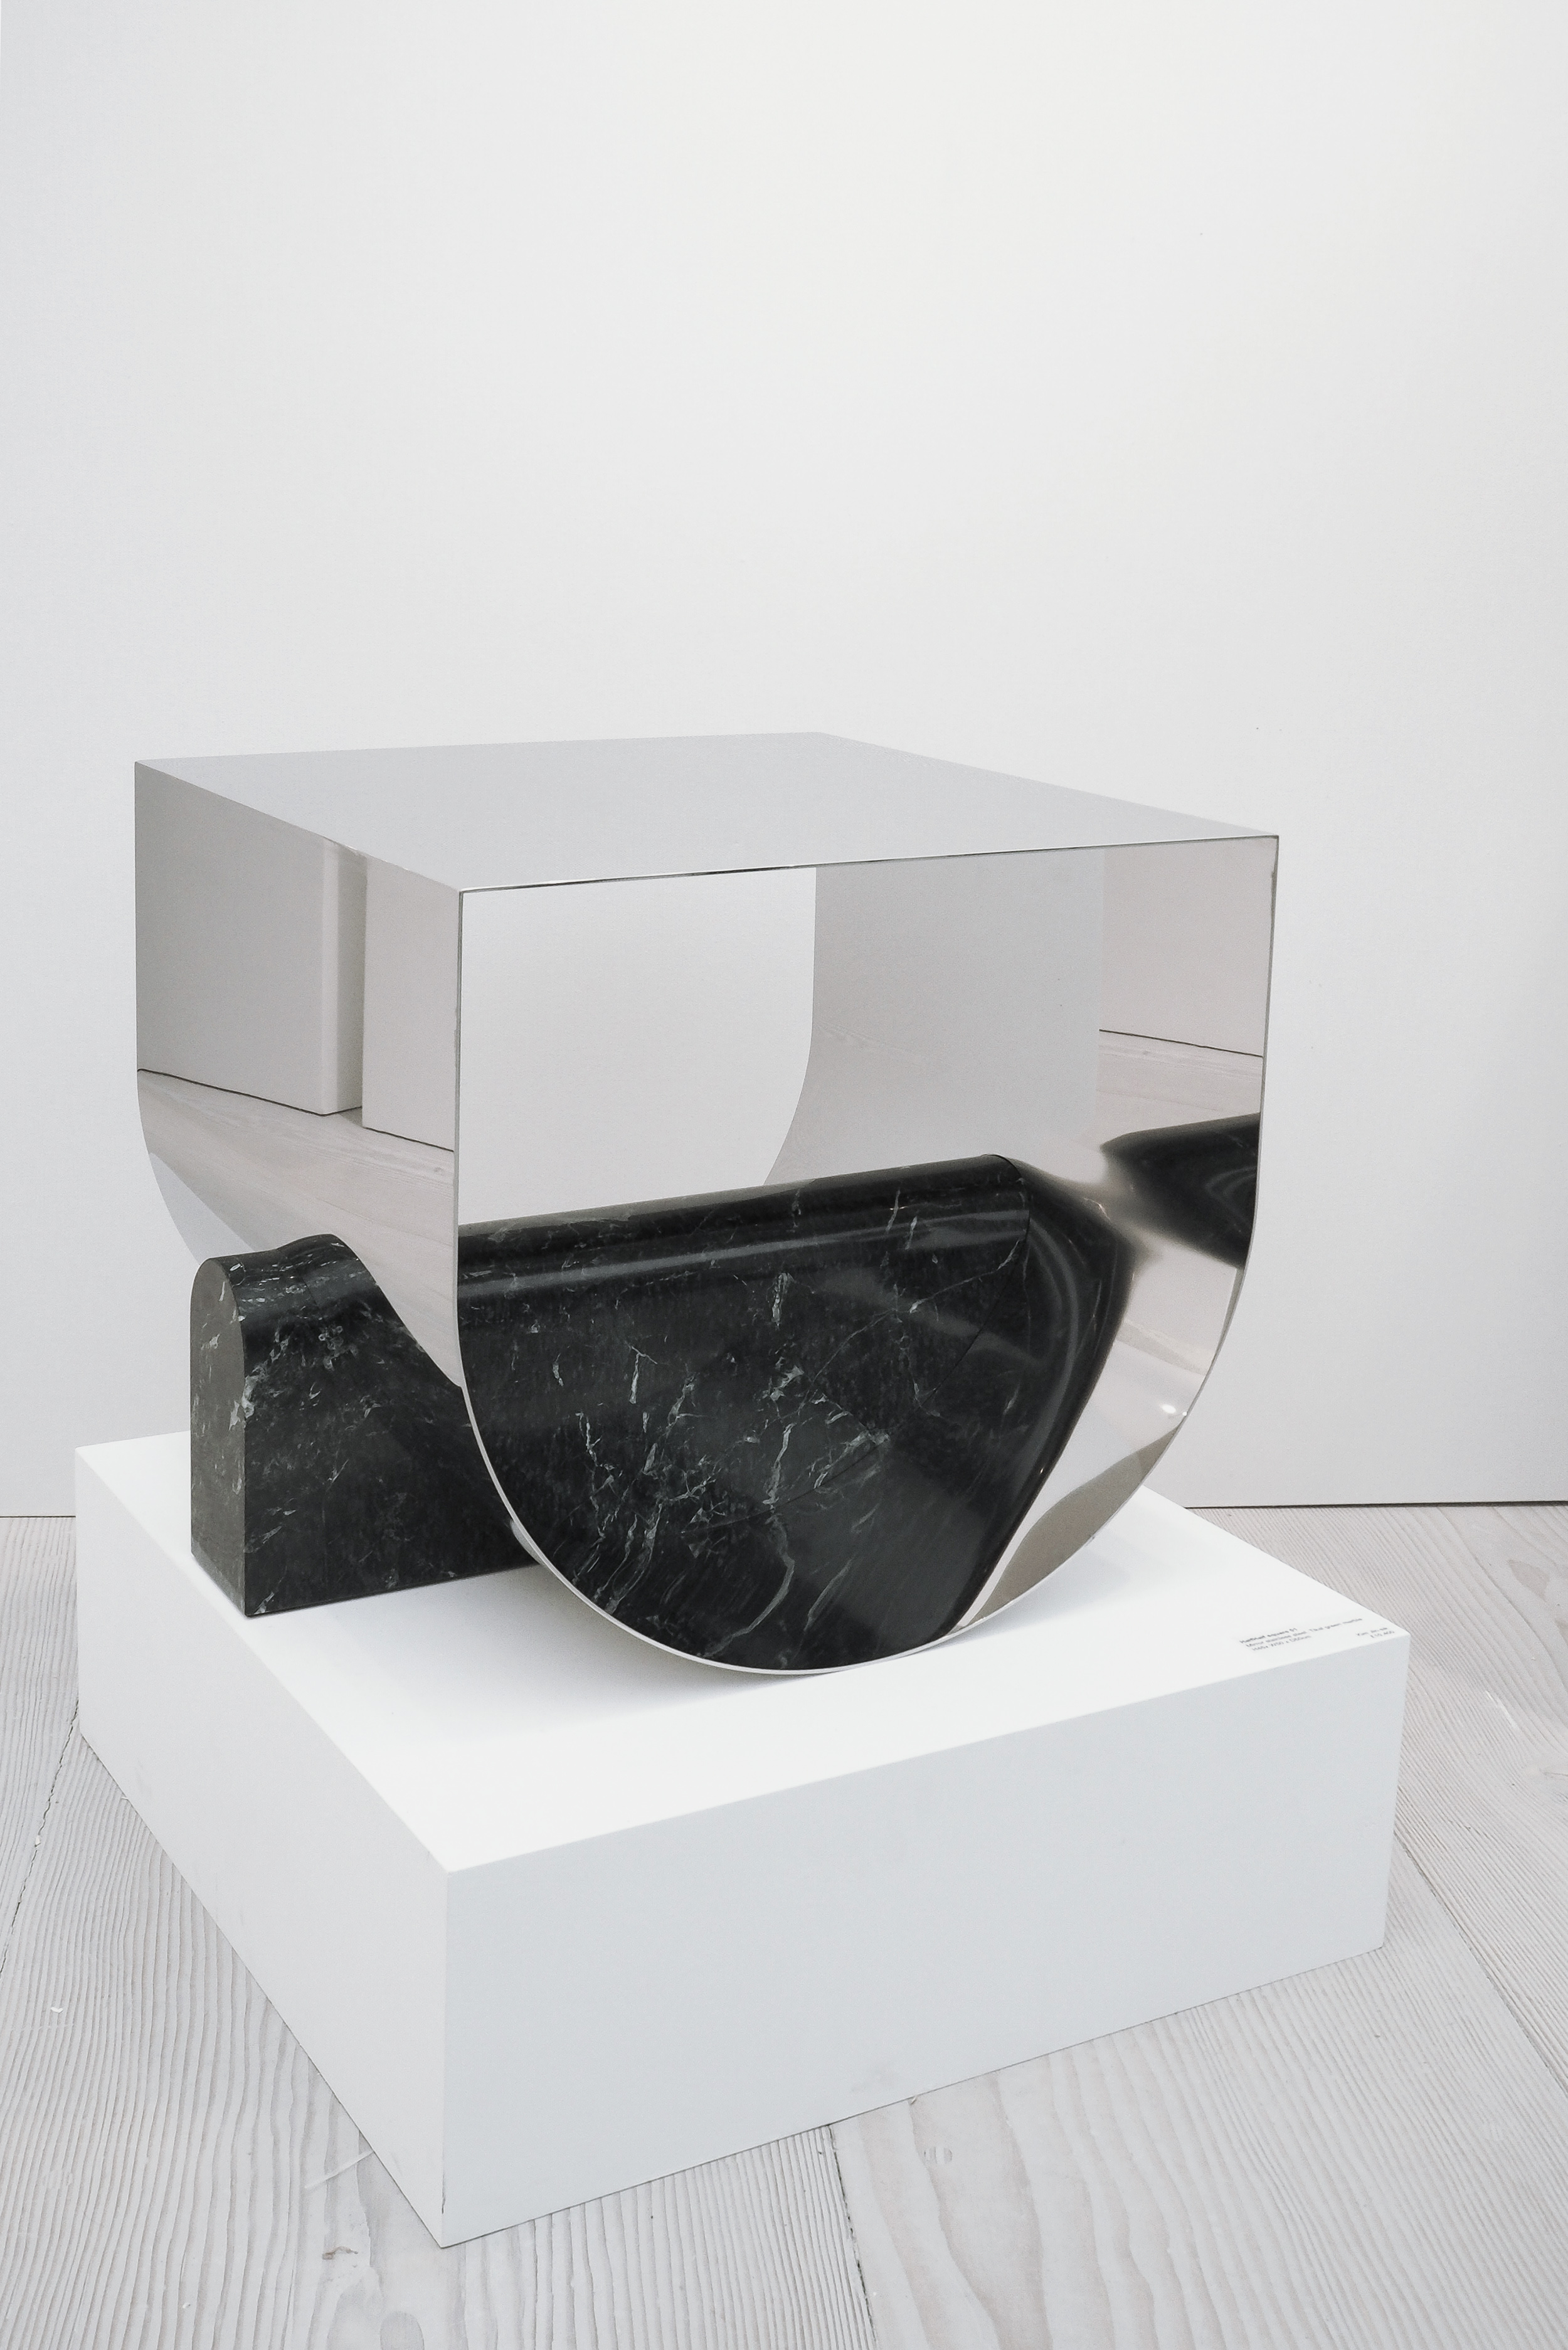 Stainless steel and marble minimalist sculpture, Kim Jin-Sik